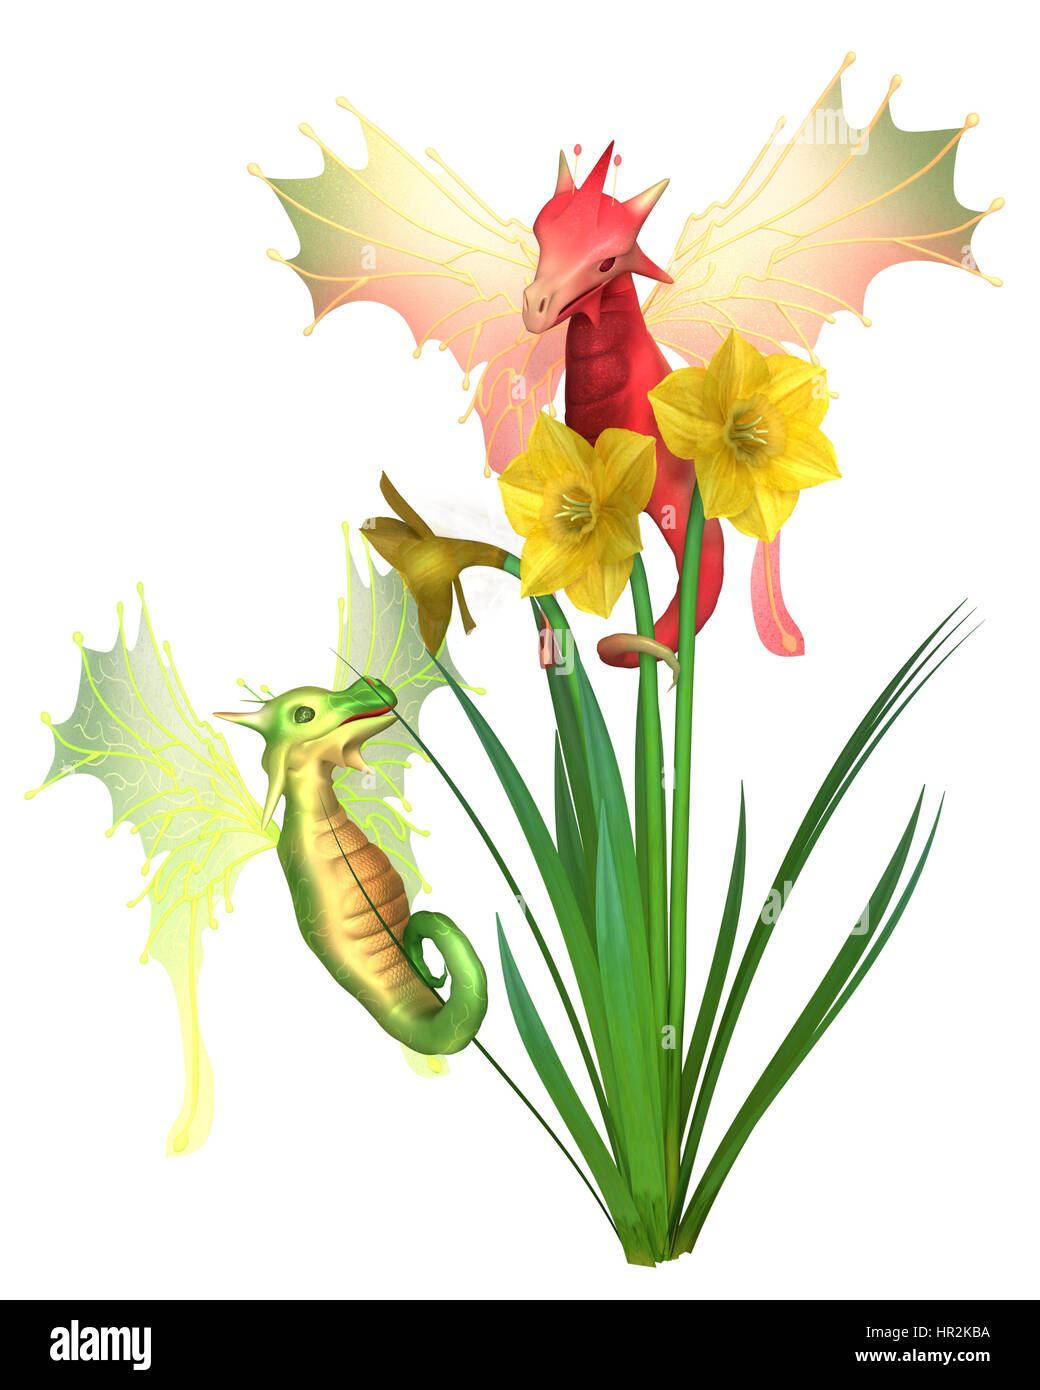 Fantasy illustration of cute red and green Welsh dragons and yellow daffodils for St David's Day, patron saint - Stock Image